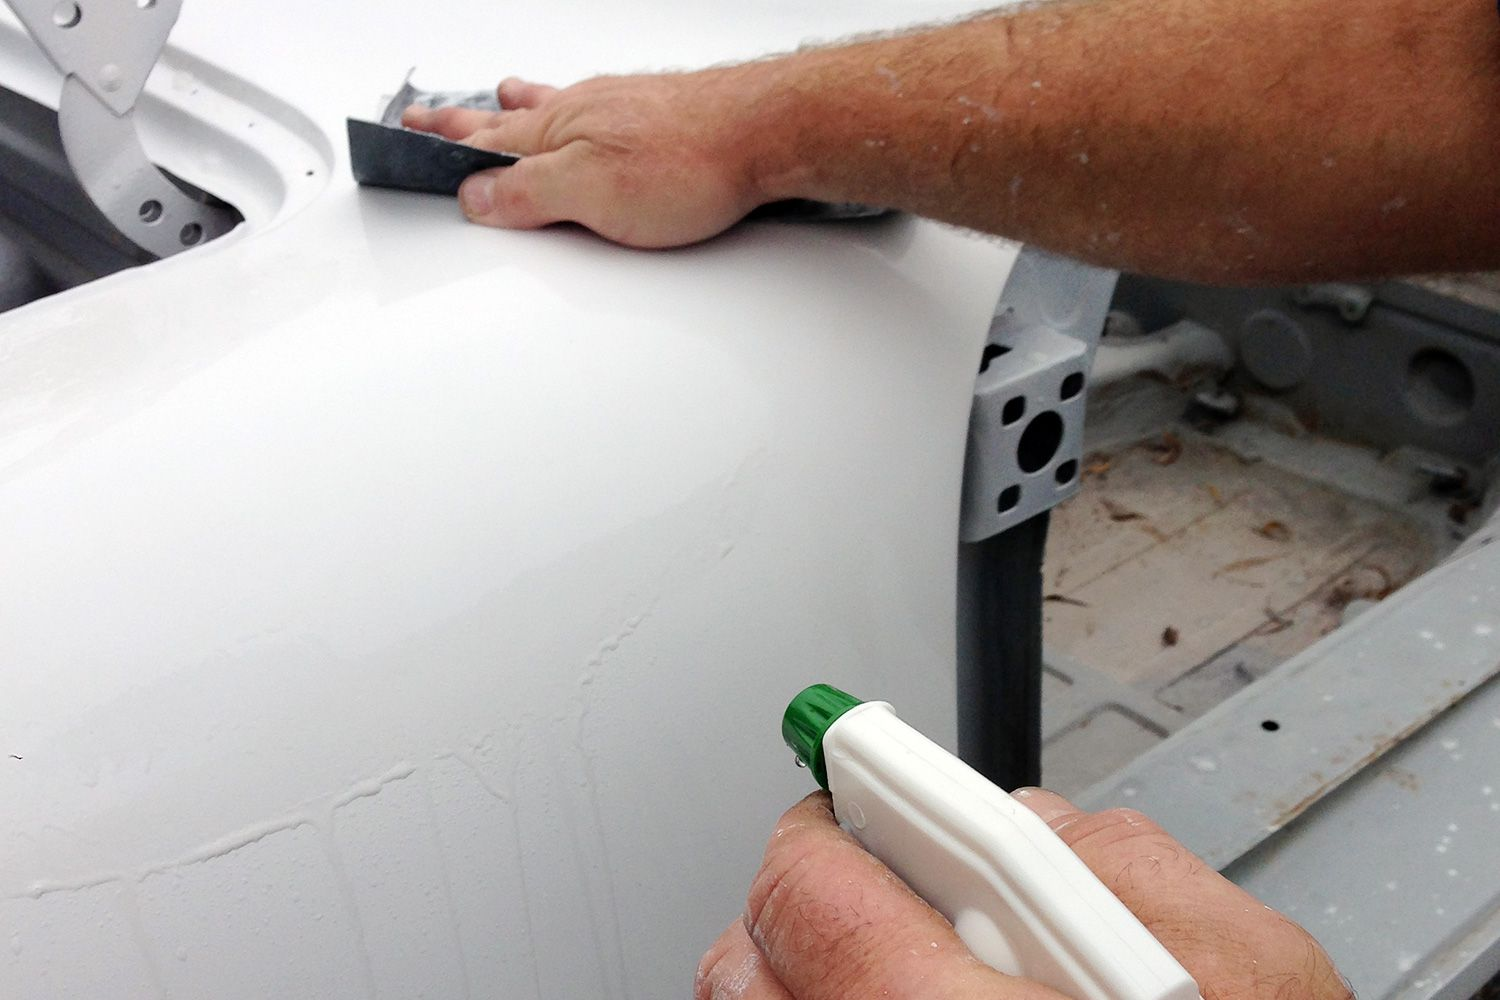 Wet Sanding Clear Coat >> Learn How to Wet Sand Your Car's Primer or Paint